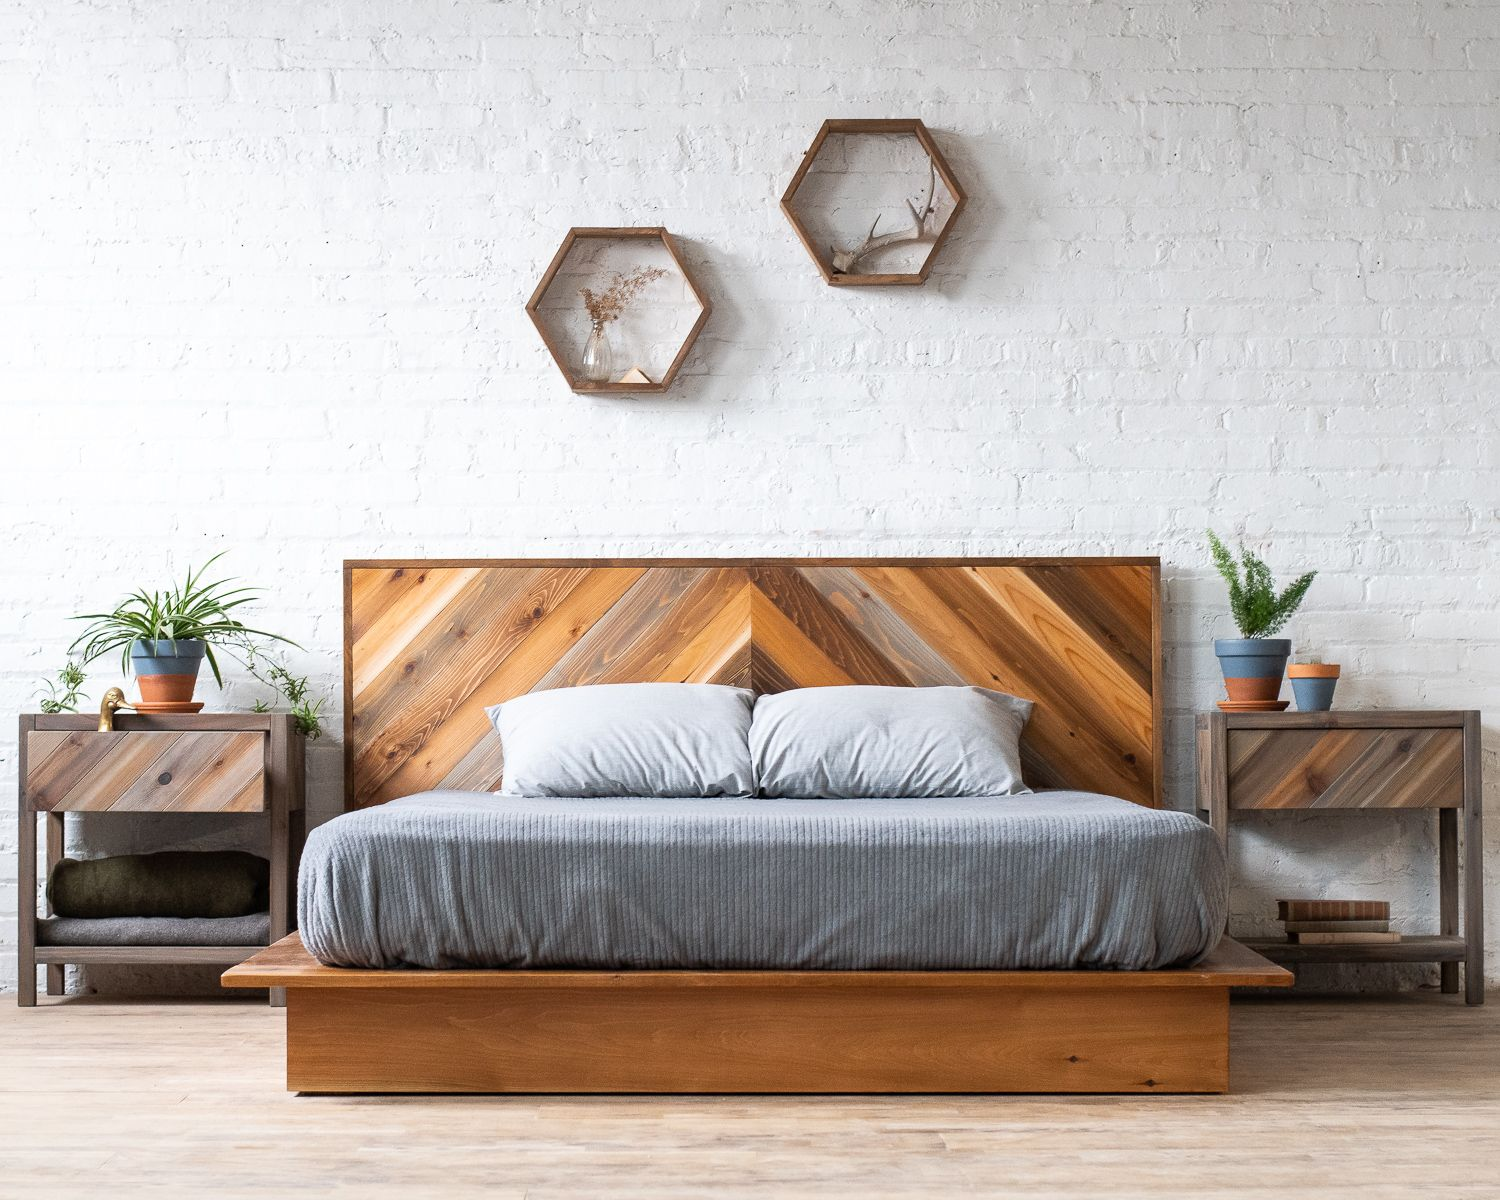 Low Pro Rustic Modern Platform Bed Frame and Headboard